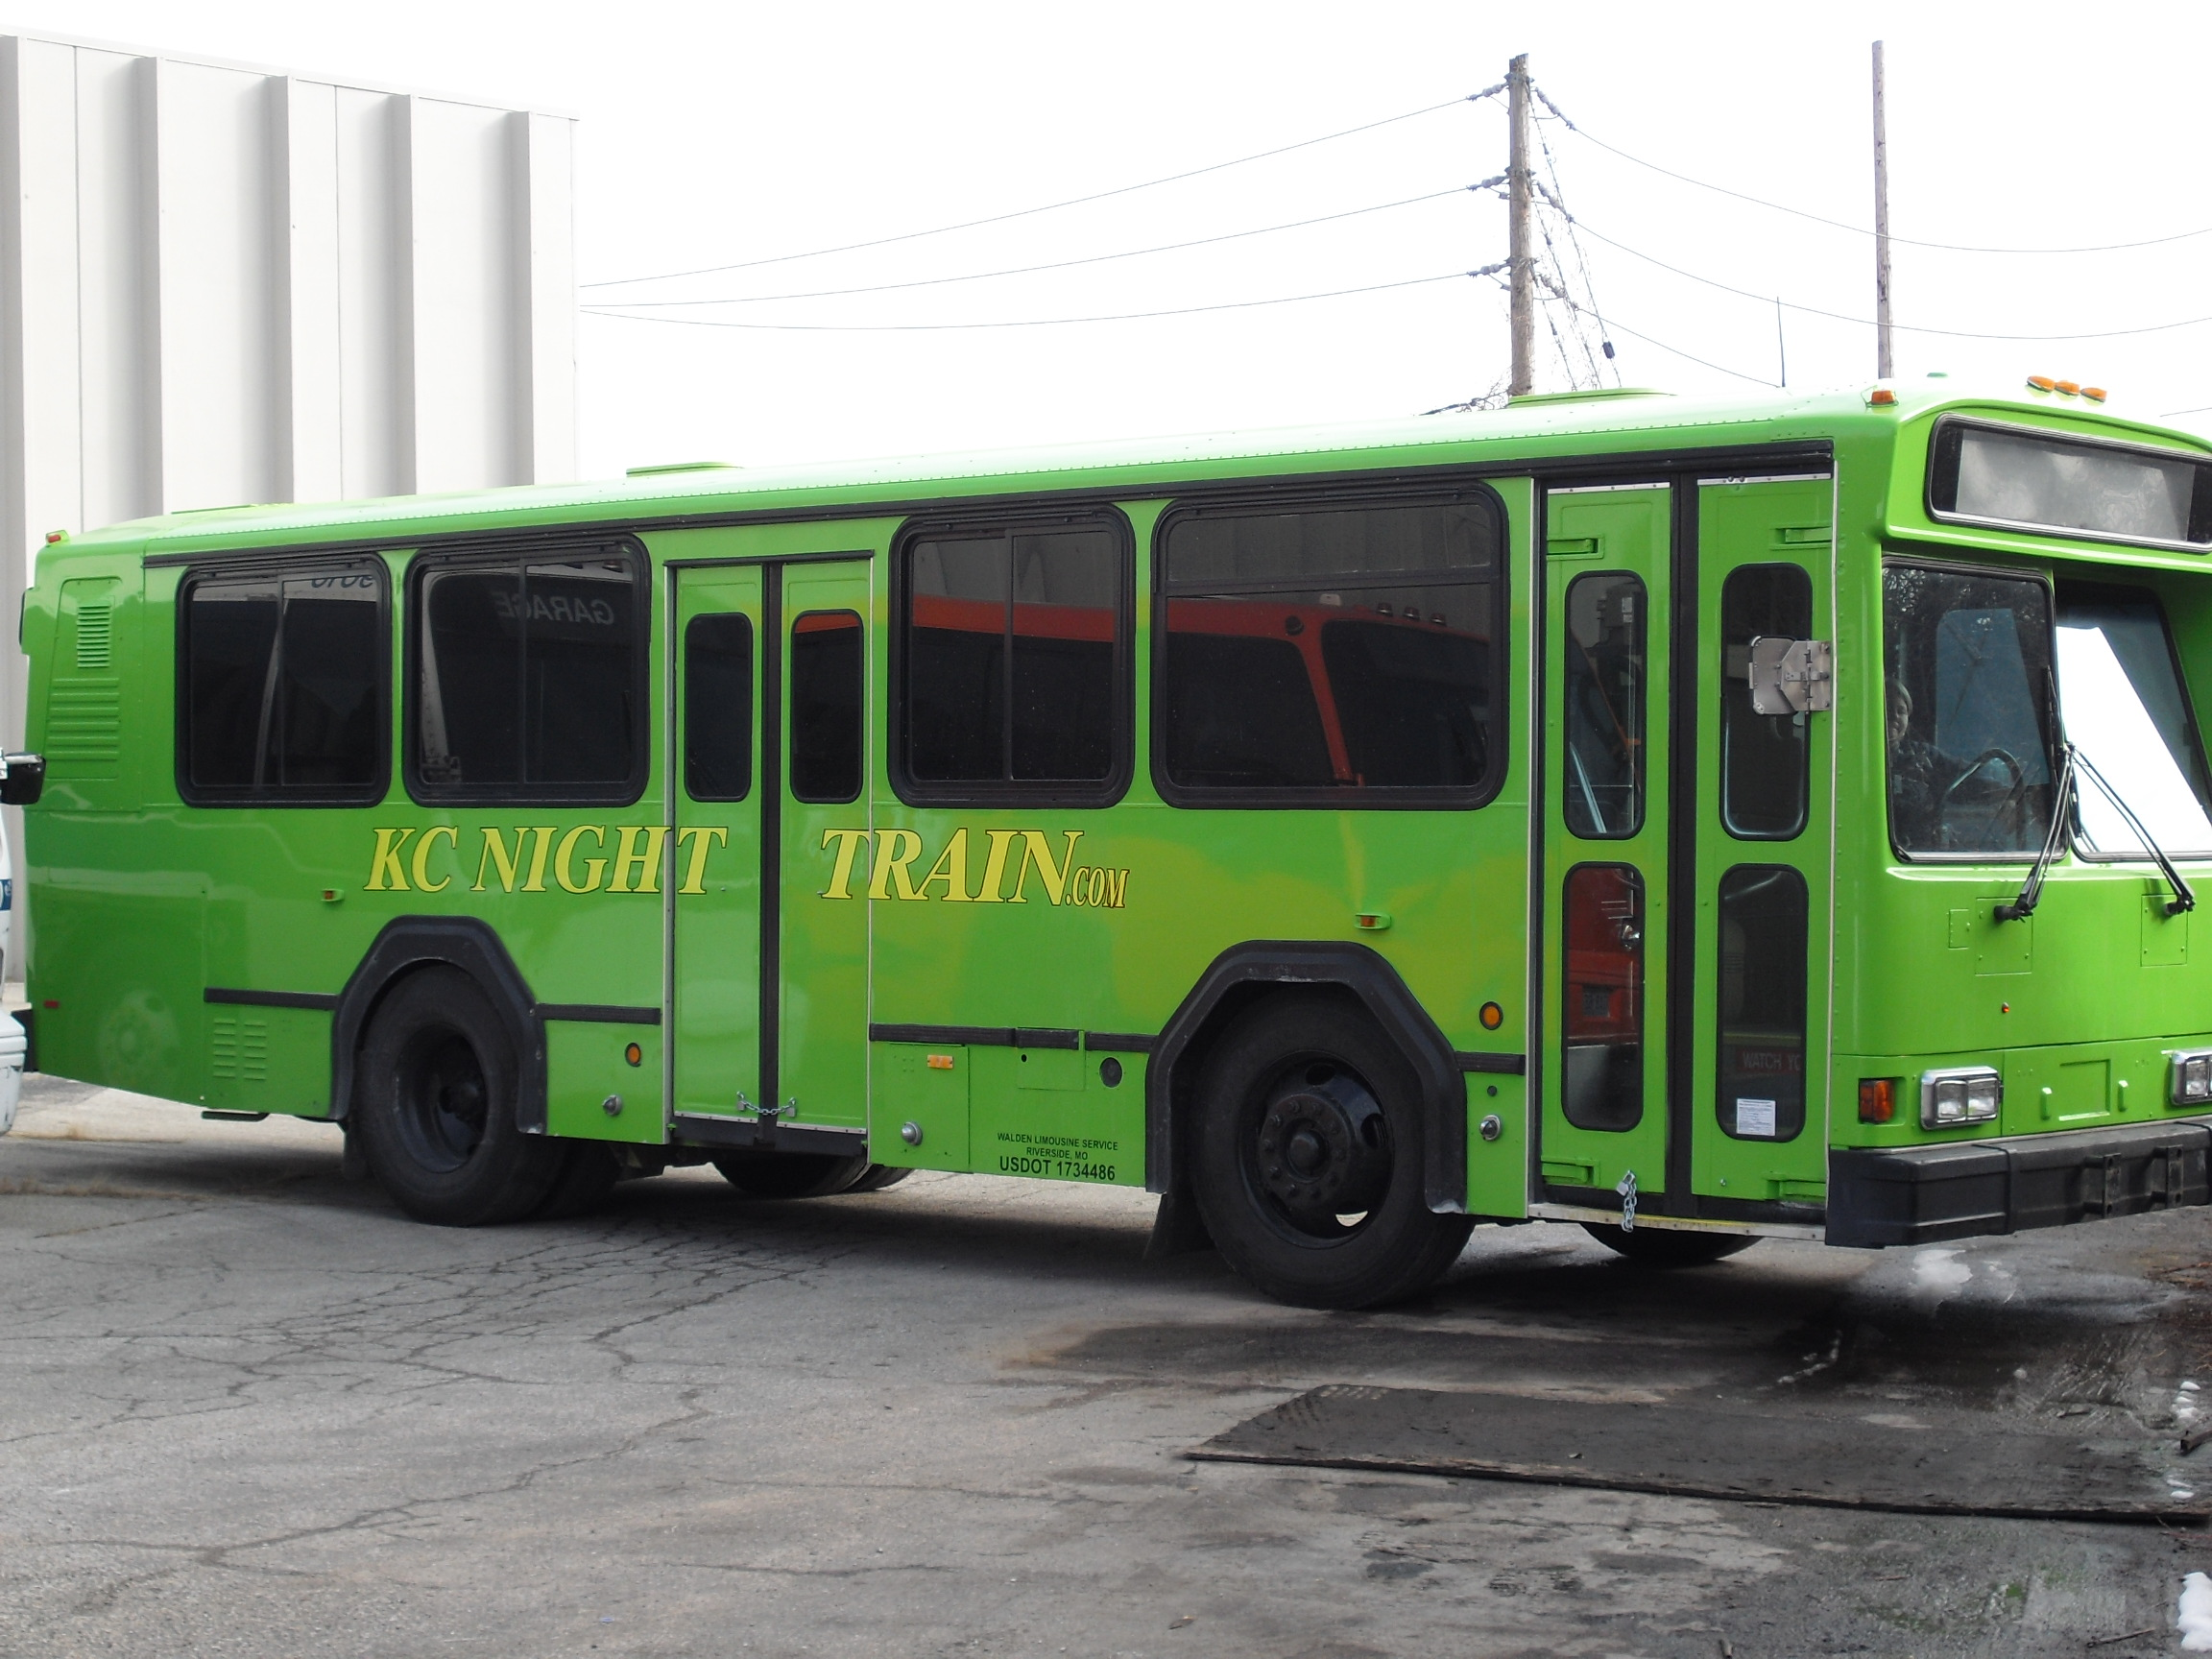 Green Party Bus as seen from the front on the passenger's side